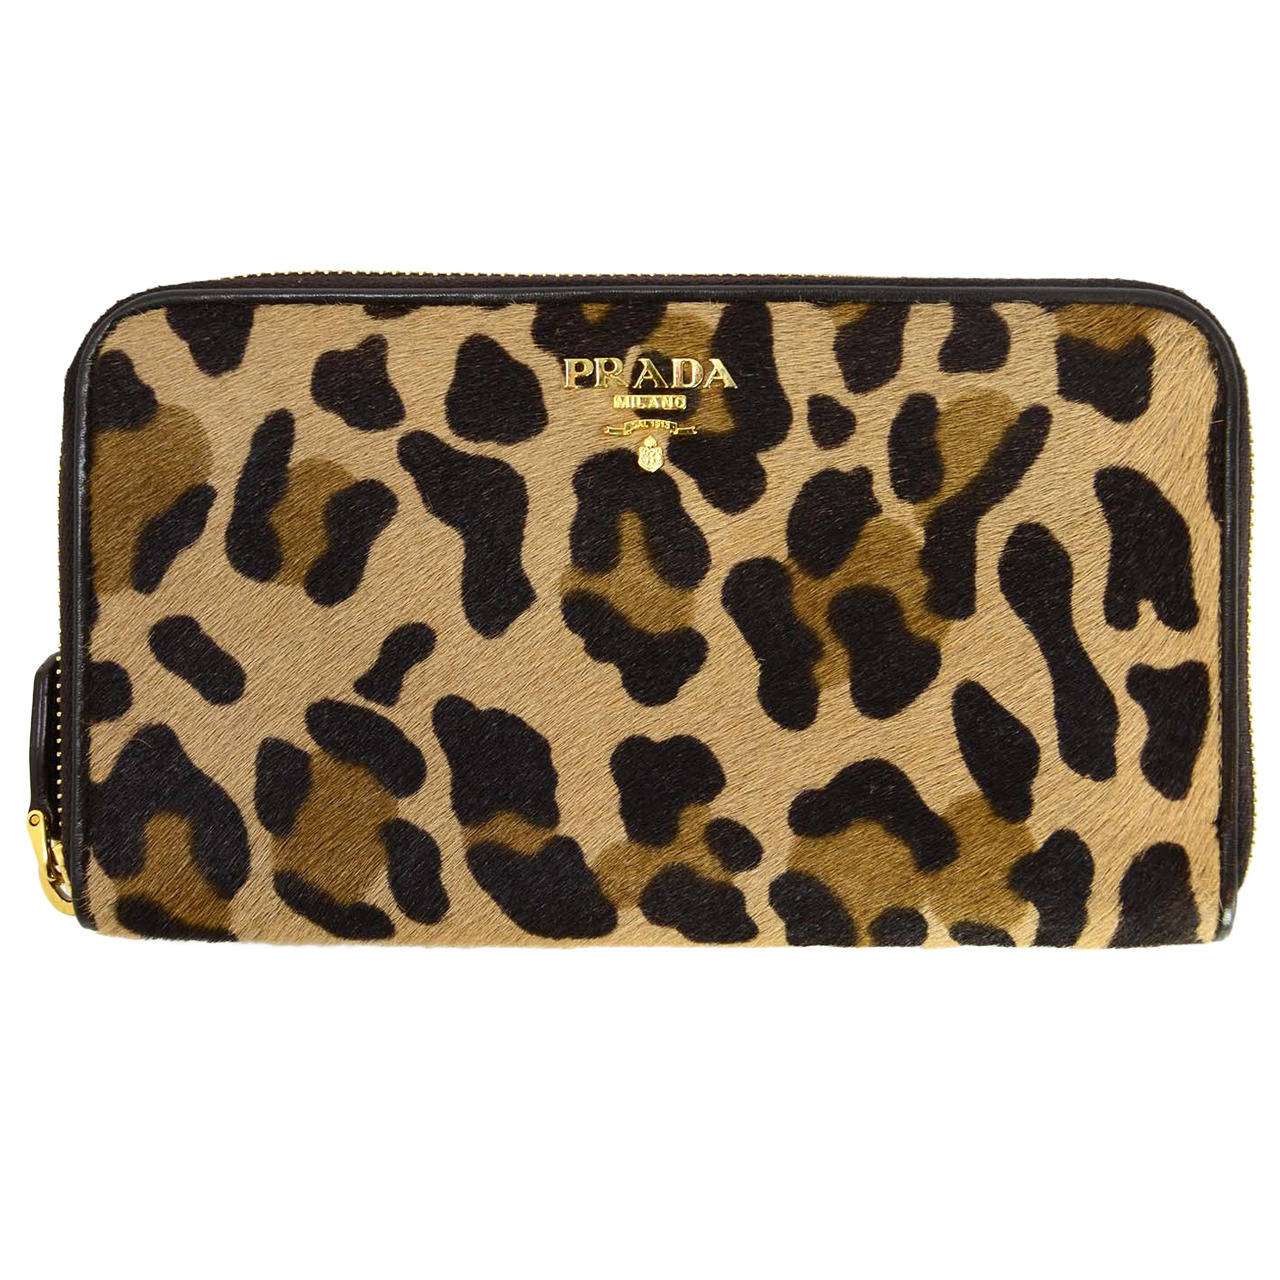 1830b9886db6 PRADA Leopard Print Pony Hair Zippy Wallet GHW at 1stdibs